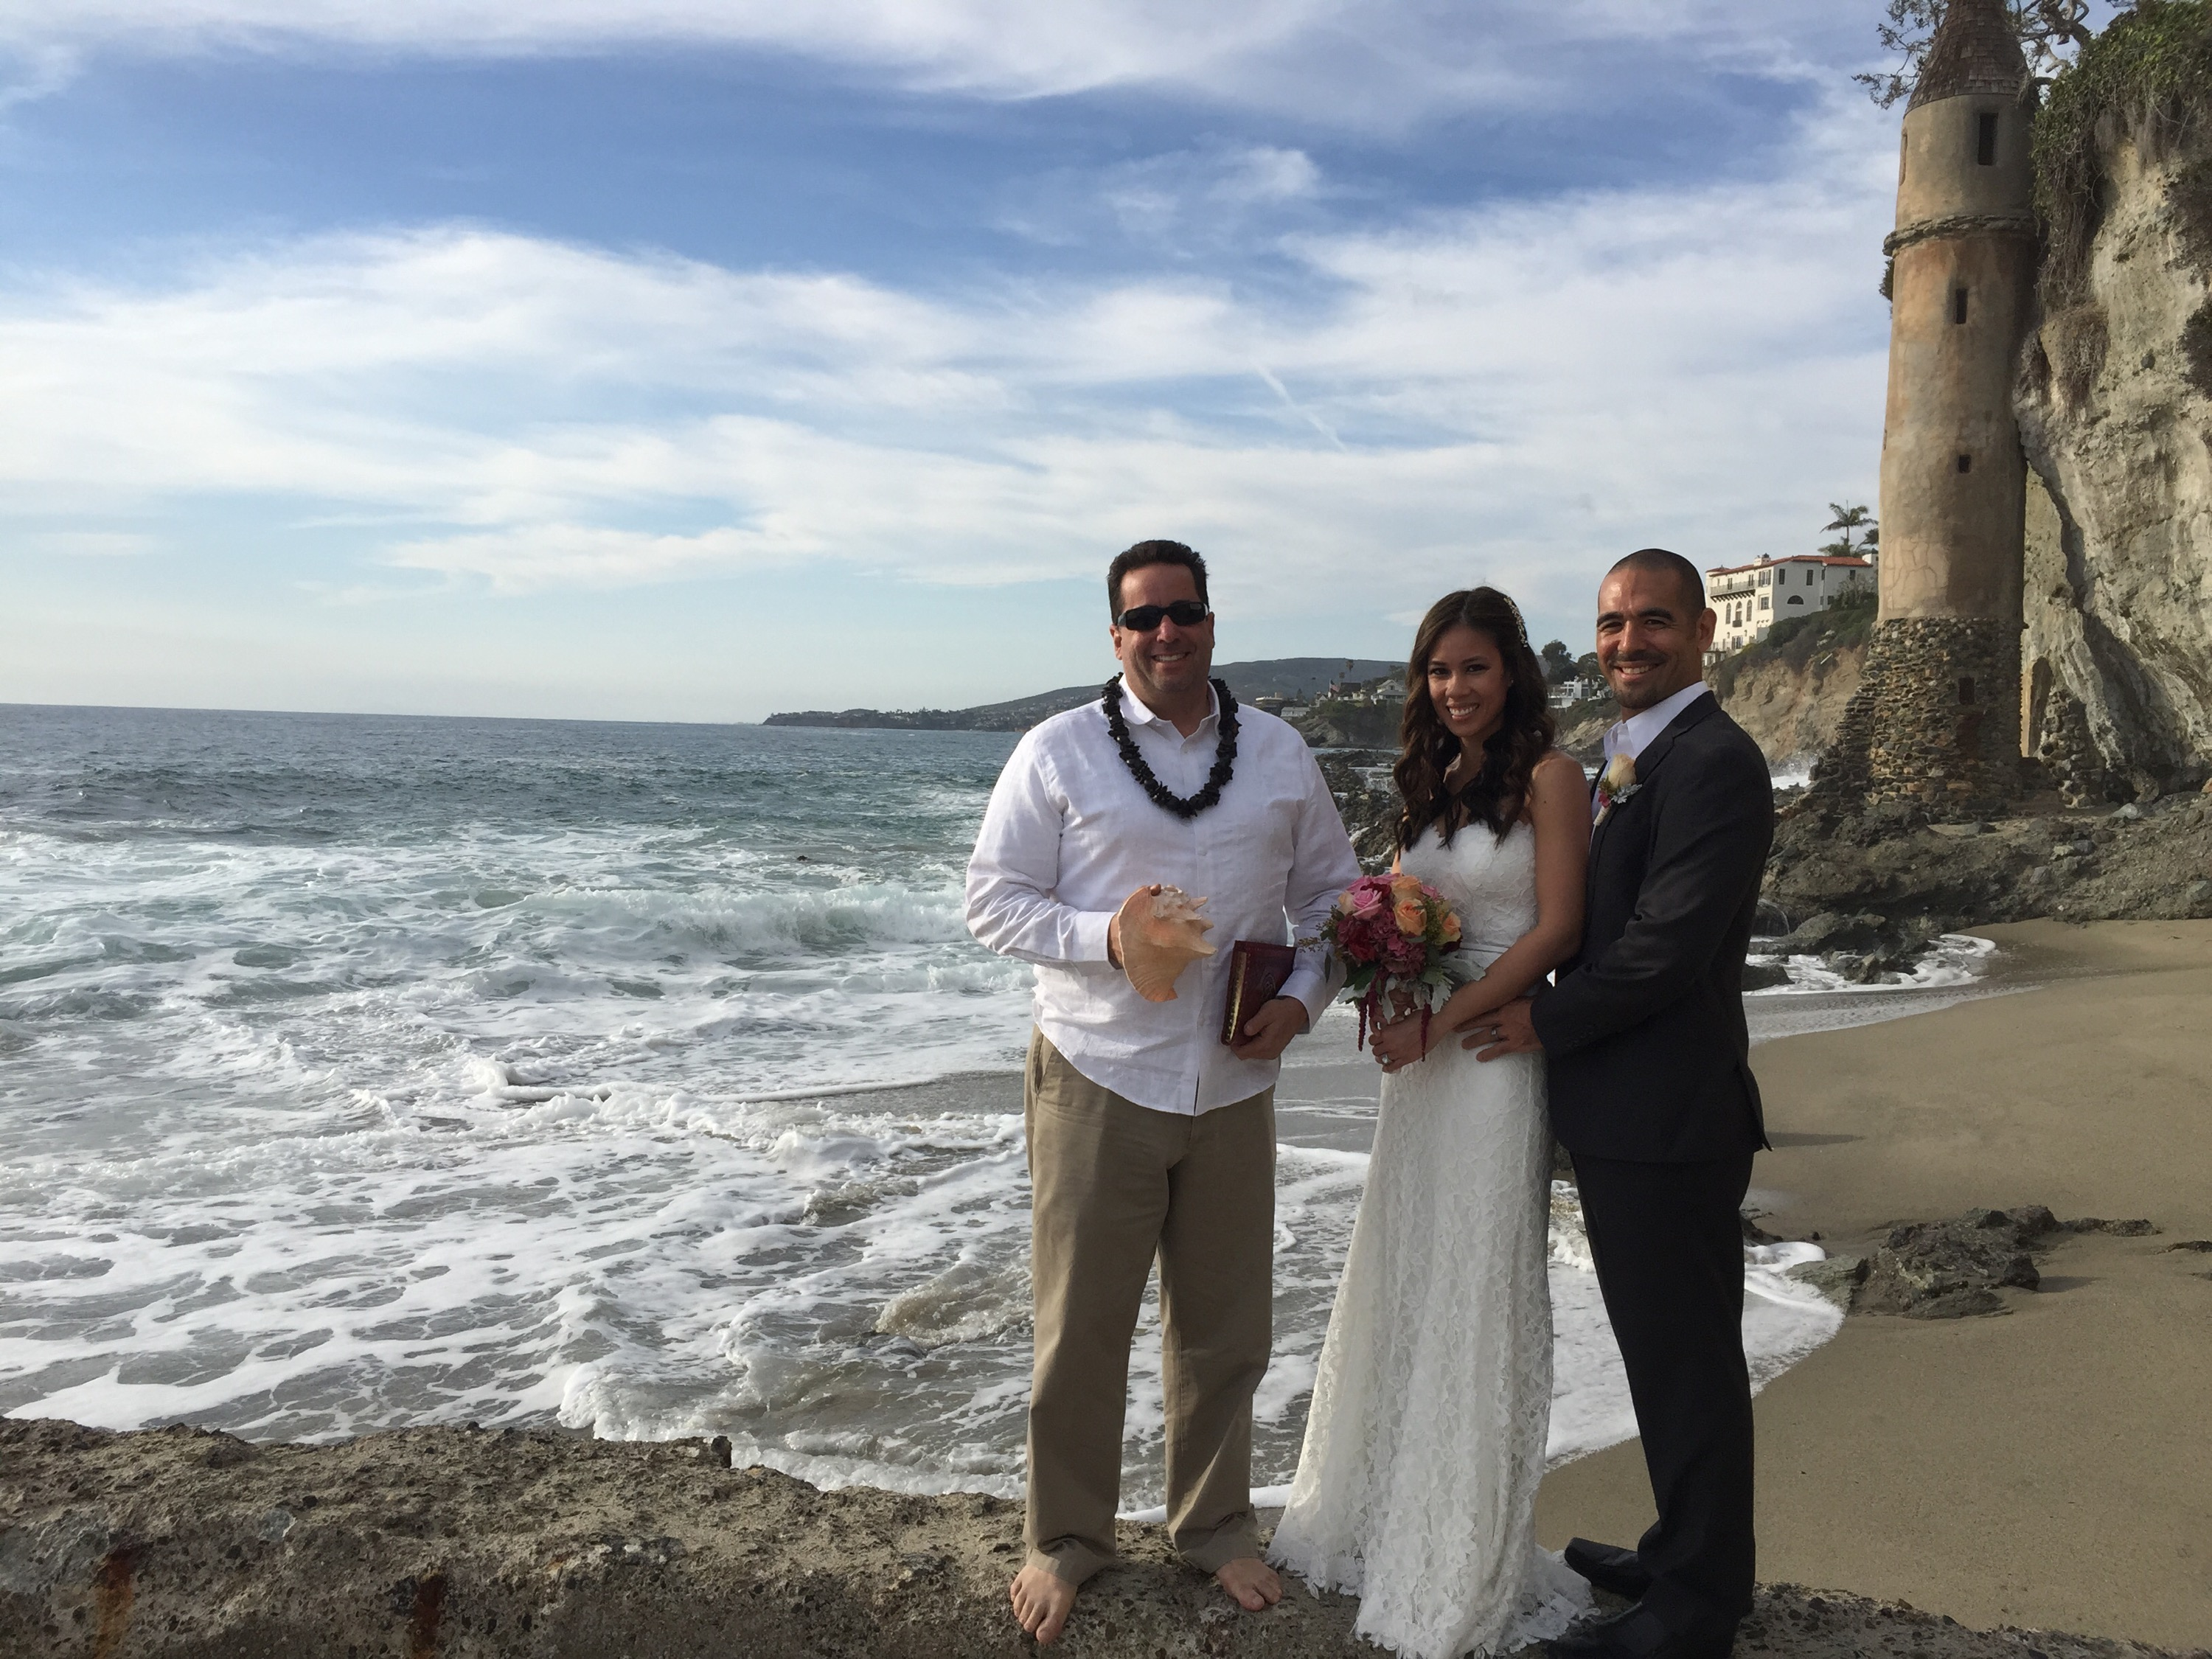 Victoria Beach Wedding Ceremony. With Their Toes In The